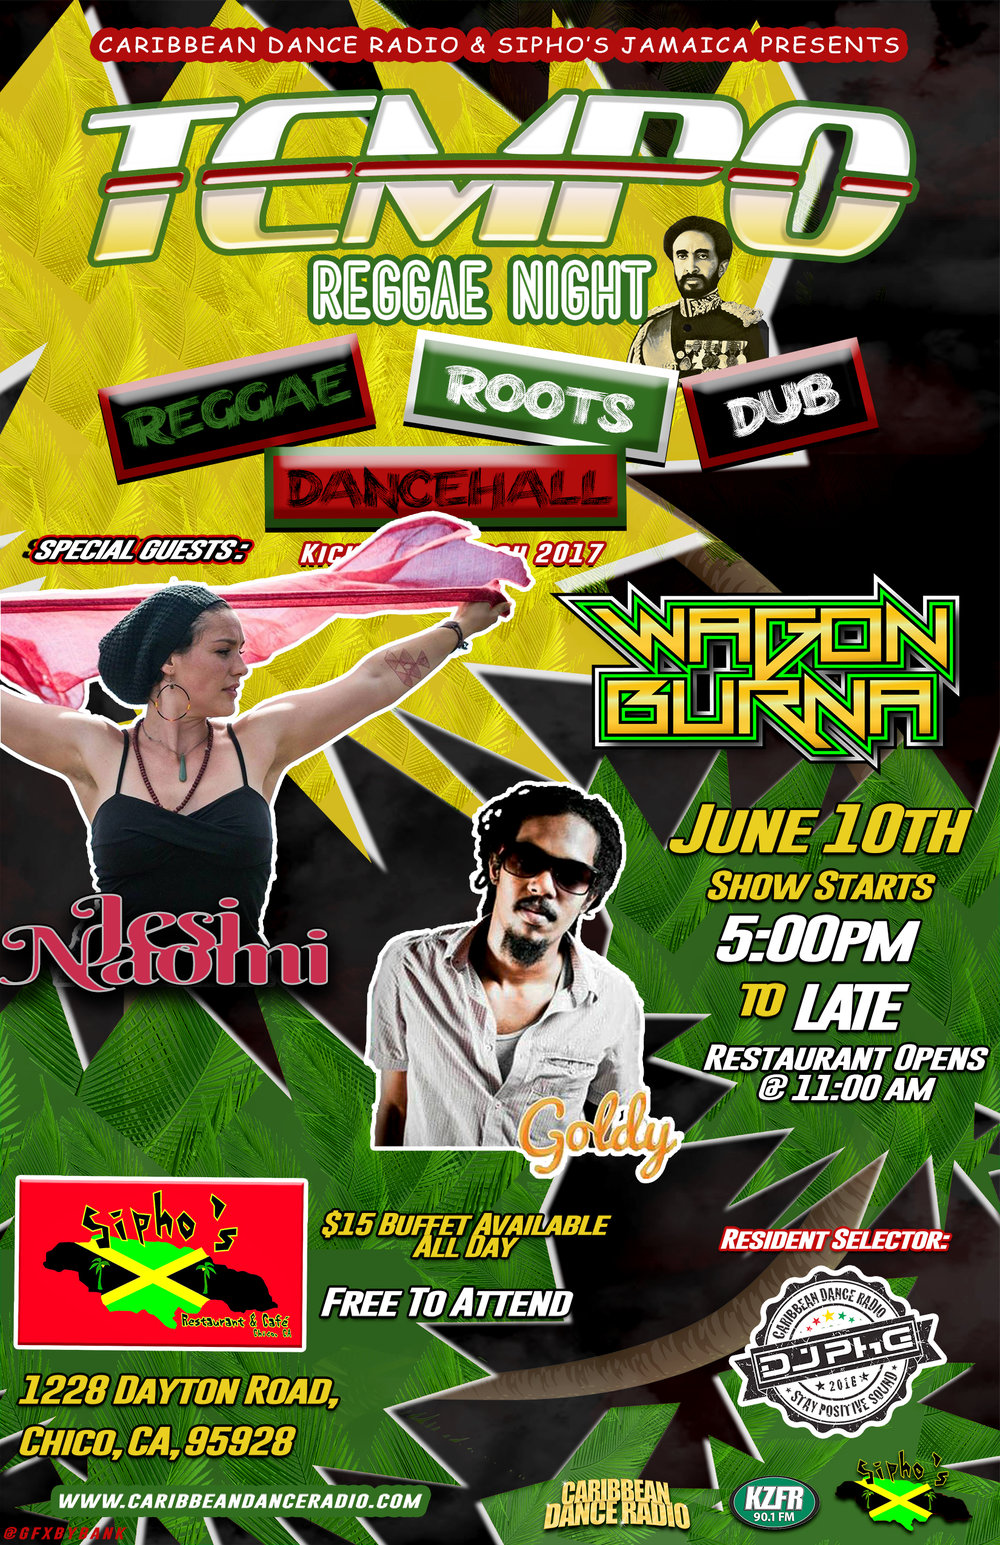 Dust off your nyabhingi drums because our next event is JUNE 10th 2017 with the soulful sounds of  Jesi Naomi  and the exquisite selections of Bruce Wagonburner  aka  WAGON BURNA  ***New to the lineup this month is  Goldy Undeniable  direct from Jamaica! We're bringing back the vibes for the Chico, CA massive and beyond. This a night featuring the genres of Reggae, Dancehall, Dub, and Roots featuring California's top DJ's and Soundsystems.